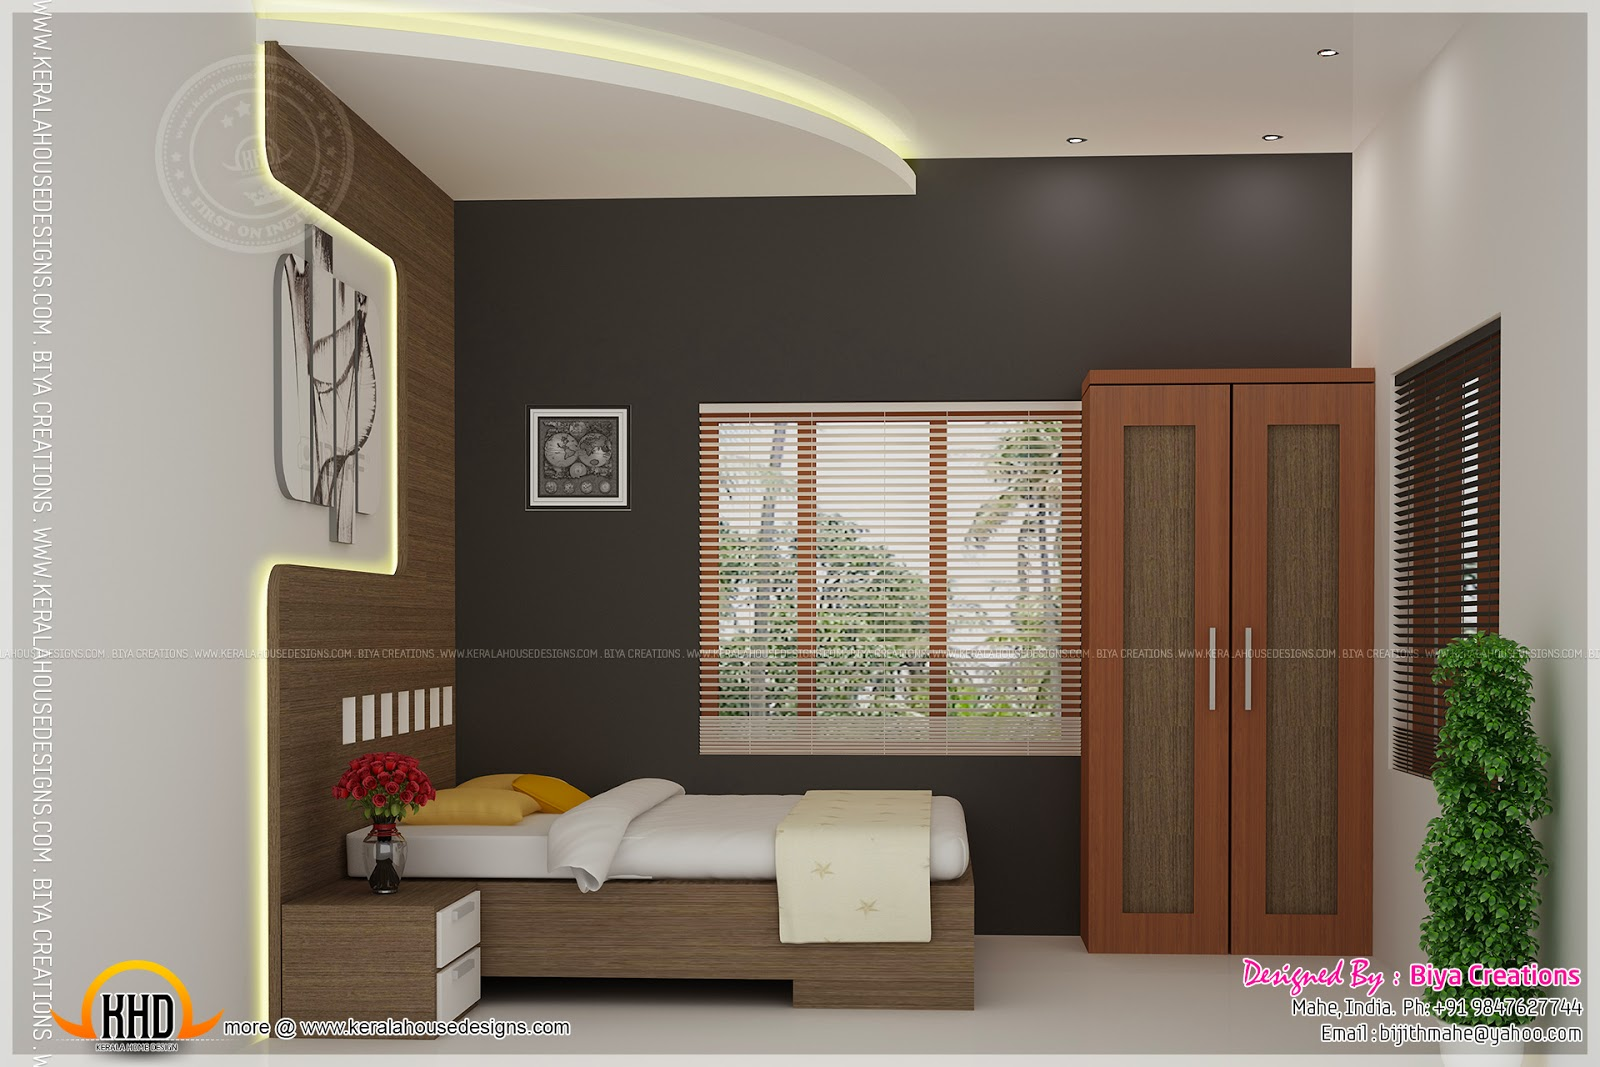 Bedroom kid bedroom and kitchen interior kerala home design and floor plans Home interior design ideas in chennai